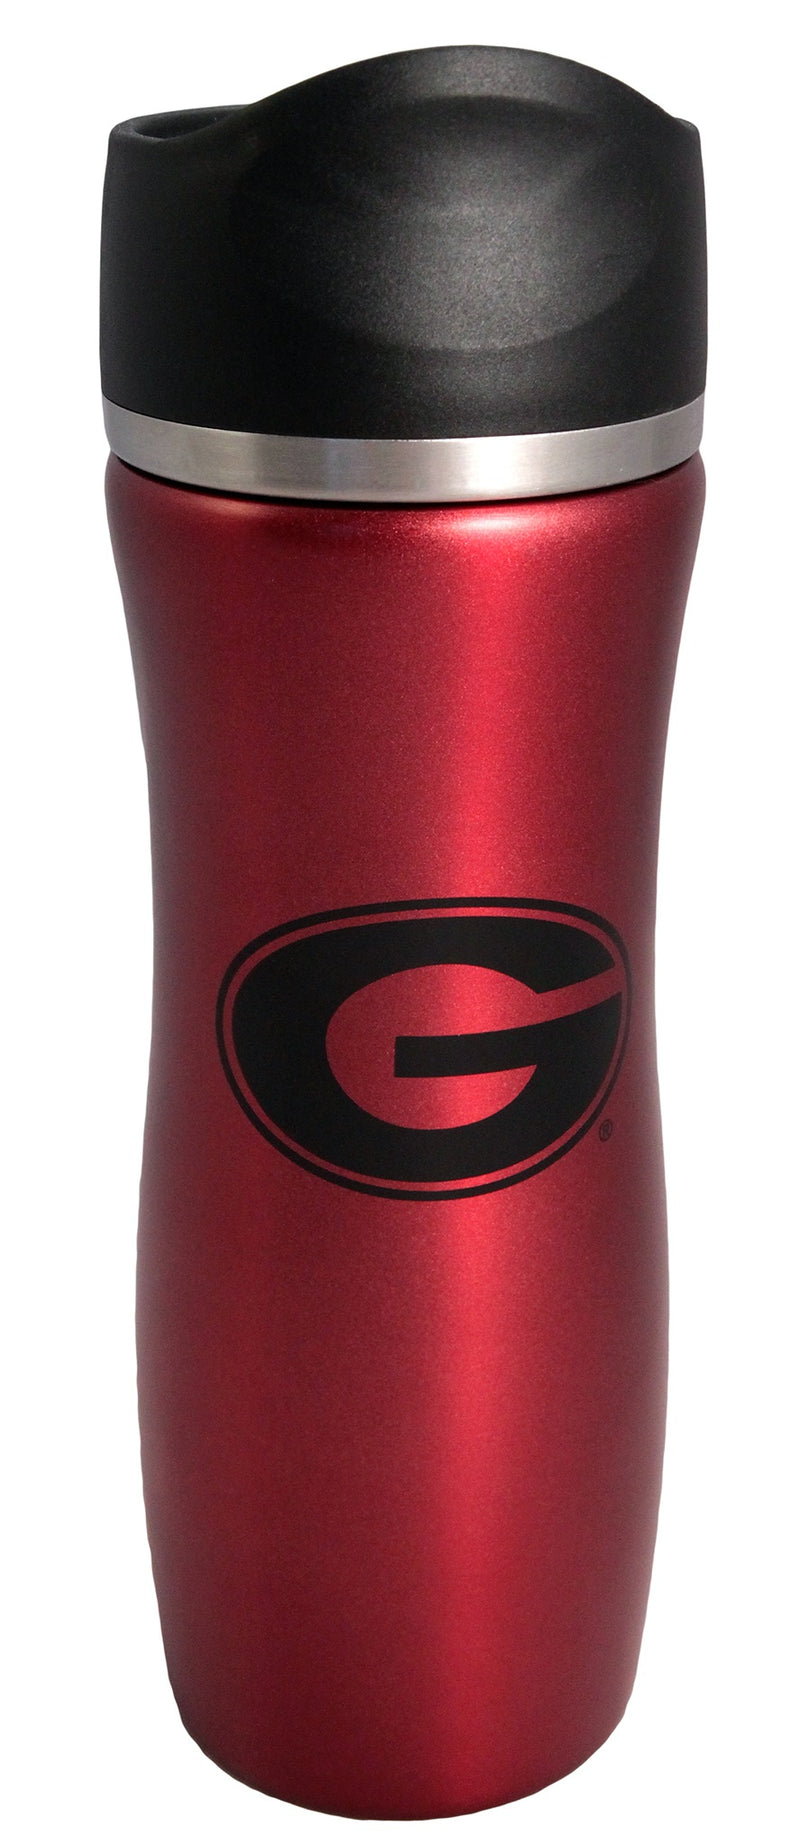 University of Georgia Vacuum Insulated Tumbler